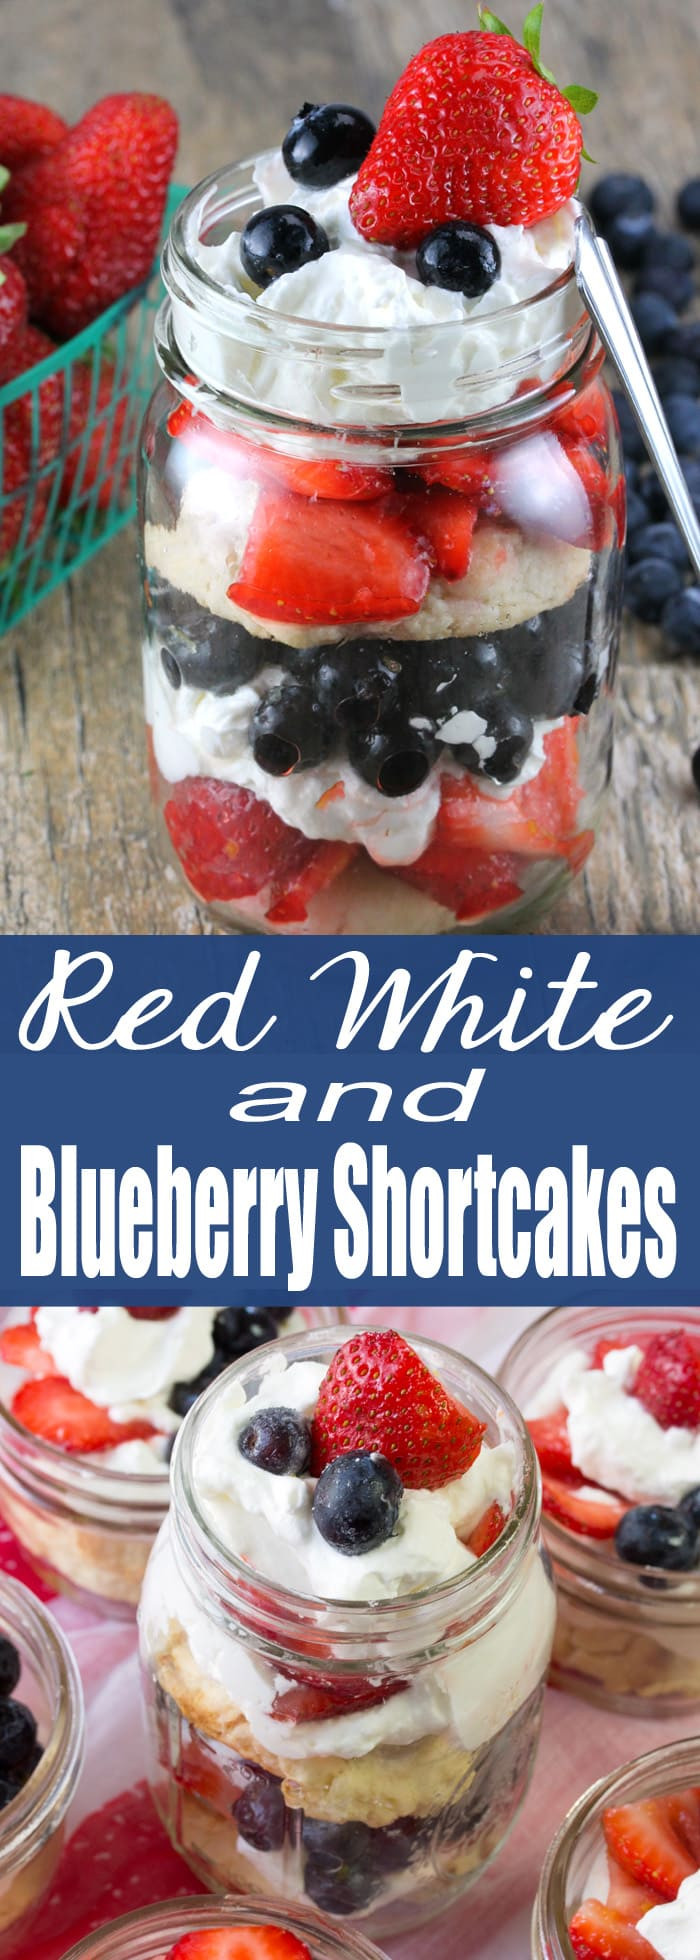 Homemade sweet biscuits, sweet seasoned berries, and freshly whipped cream. Red White and Blueberry Shortcake isthe perfect patriotic dessert.